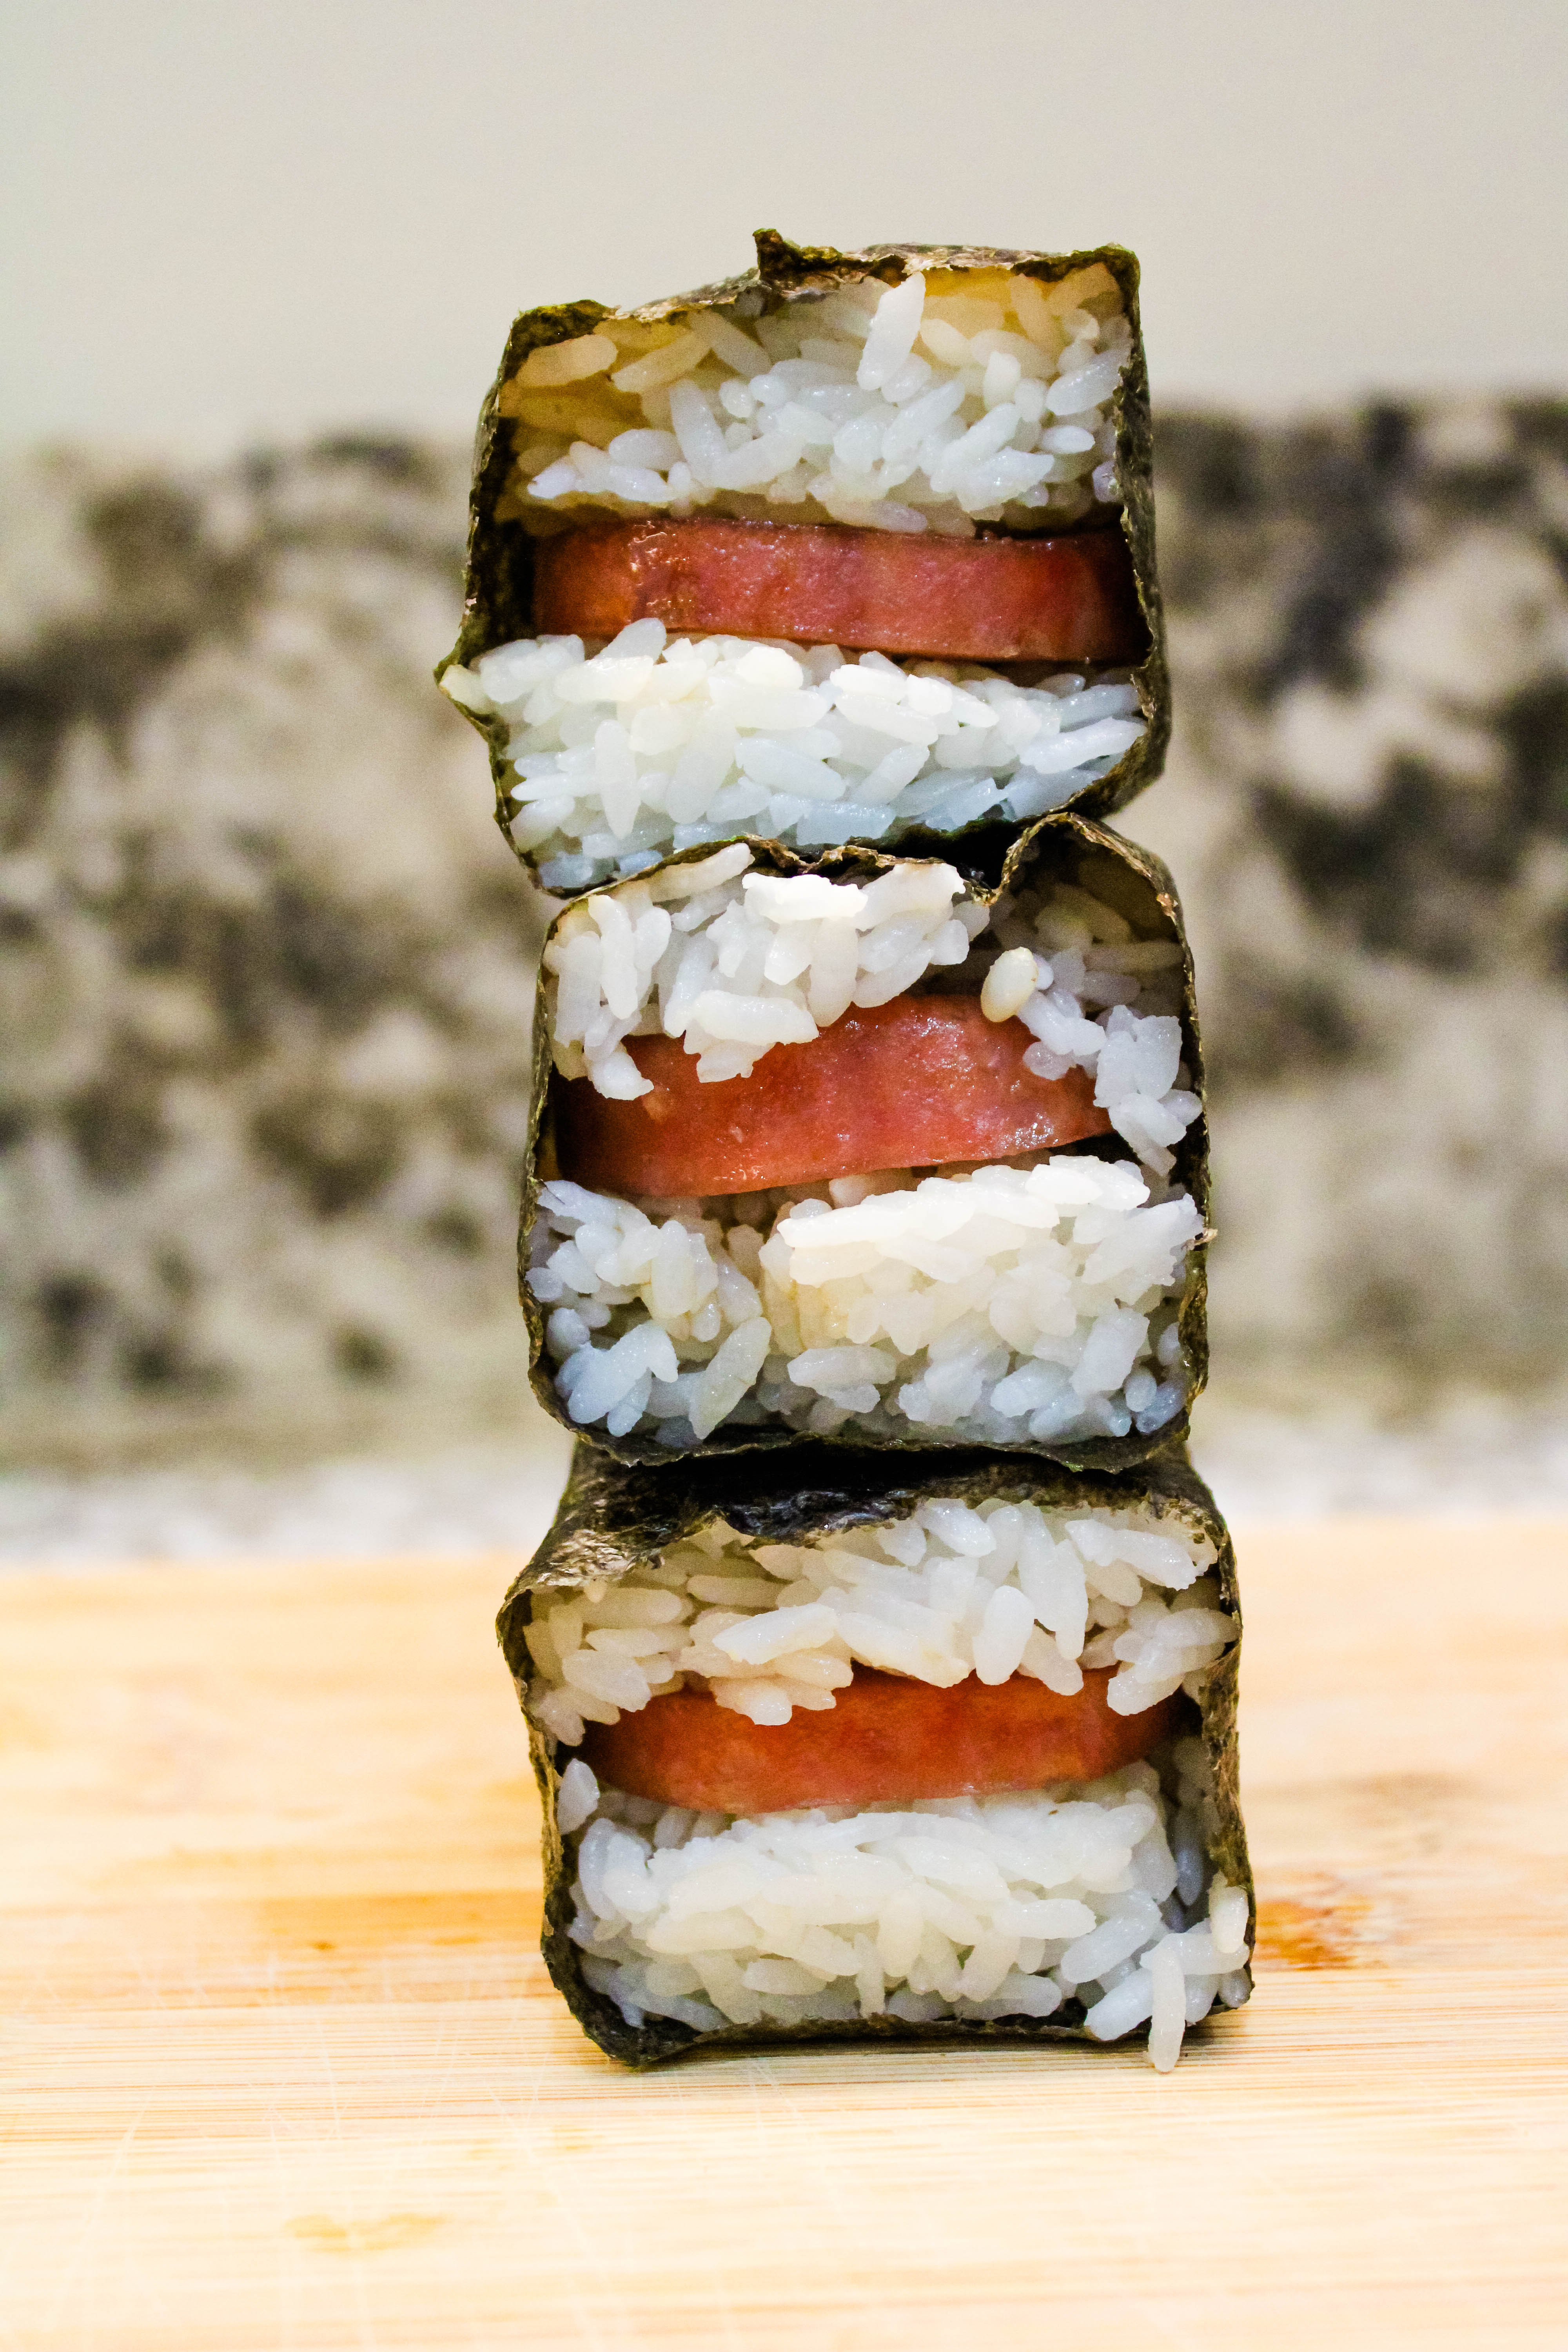 stacked spam musubis